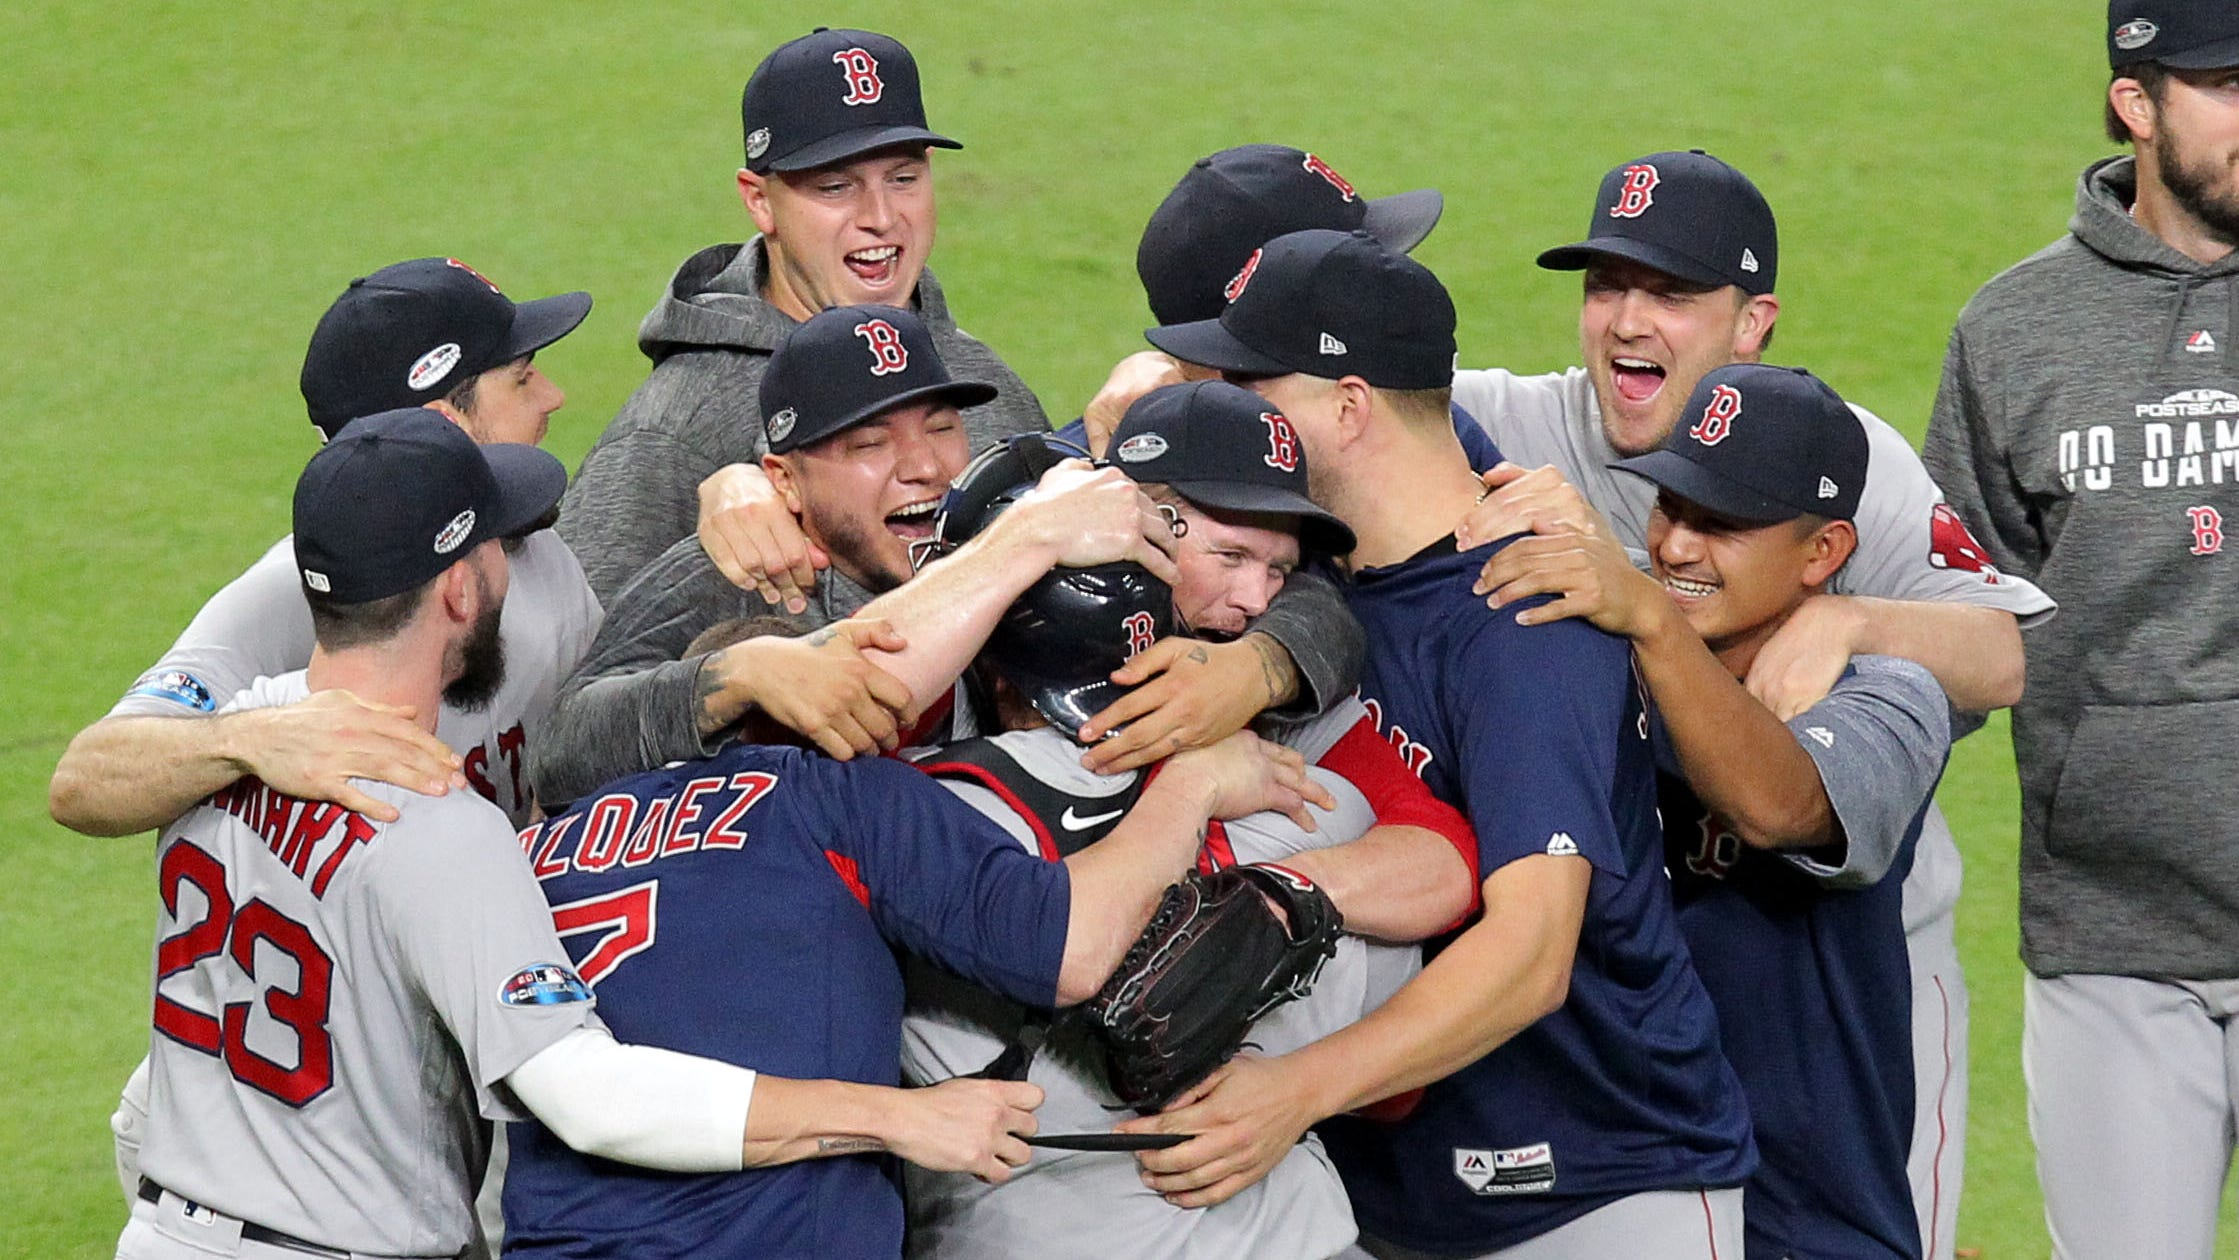 Red Sox players celebrate on the field in Houston after defeating the Astros in the ALCS to advance to the World Series.